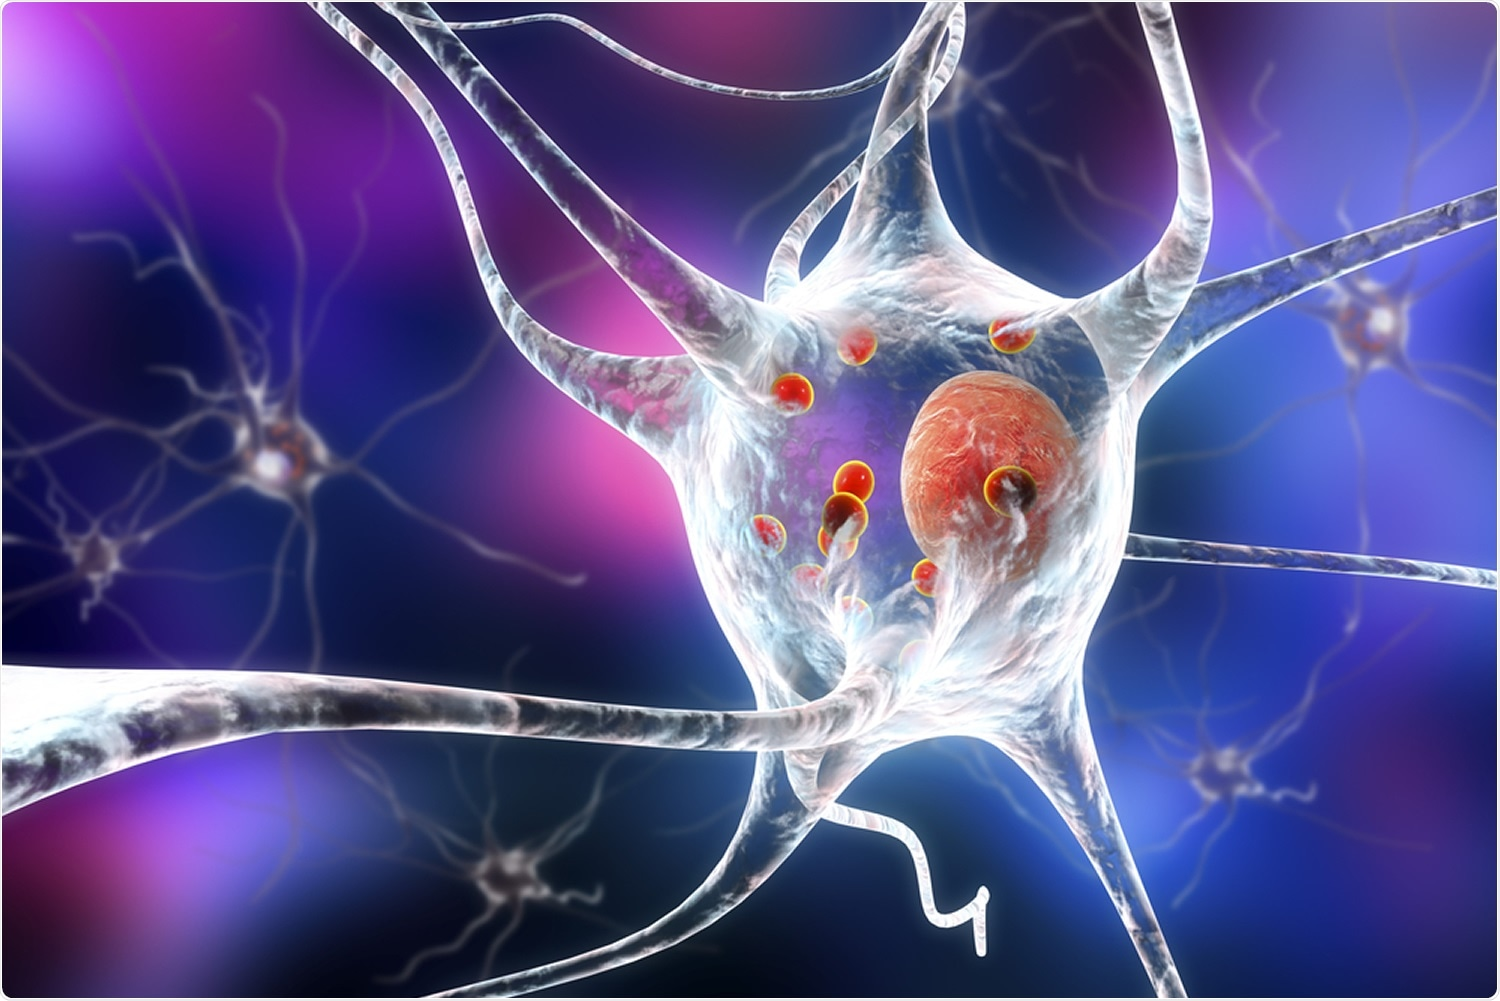 Study: High fat diet exacerbates cognitive decline in mouse models of Alzheimer